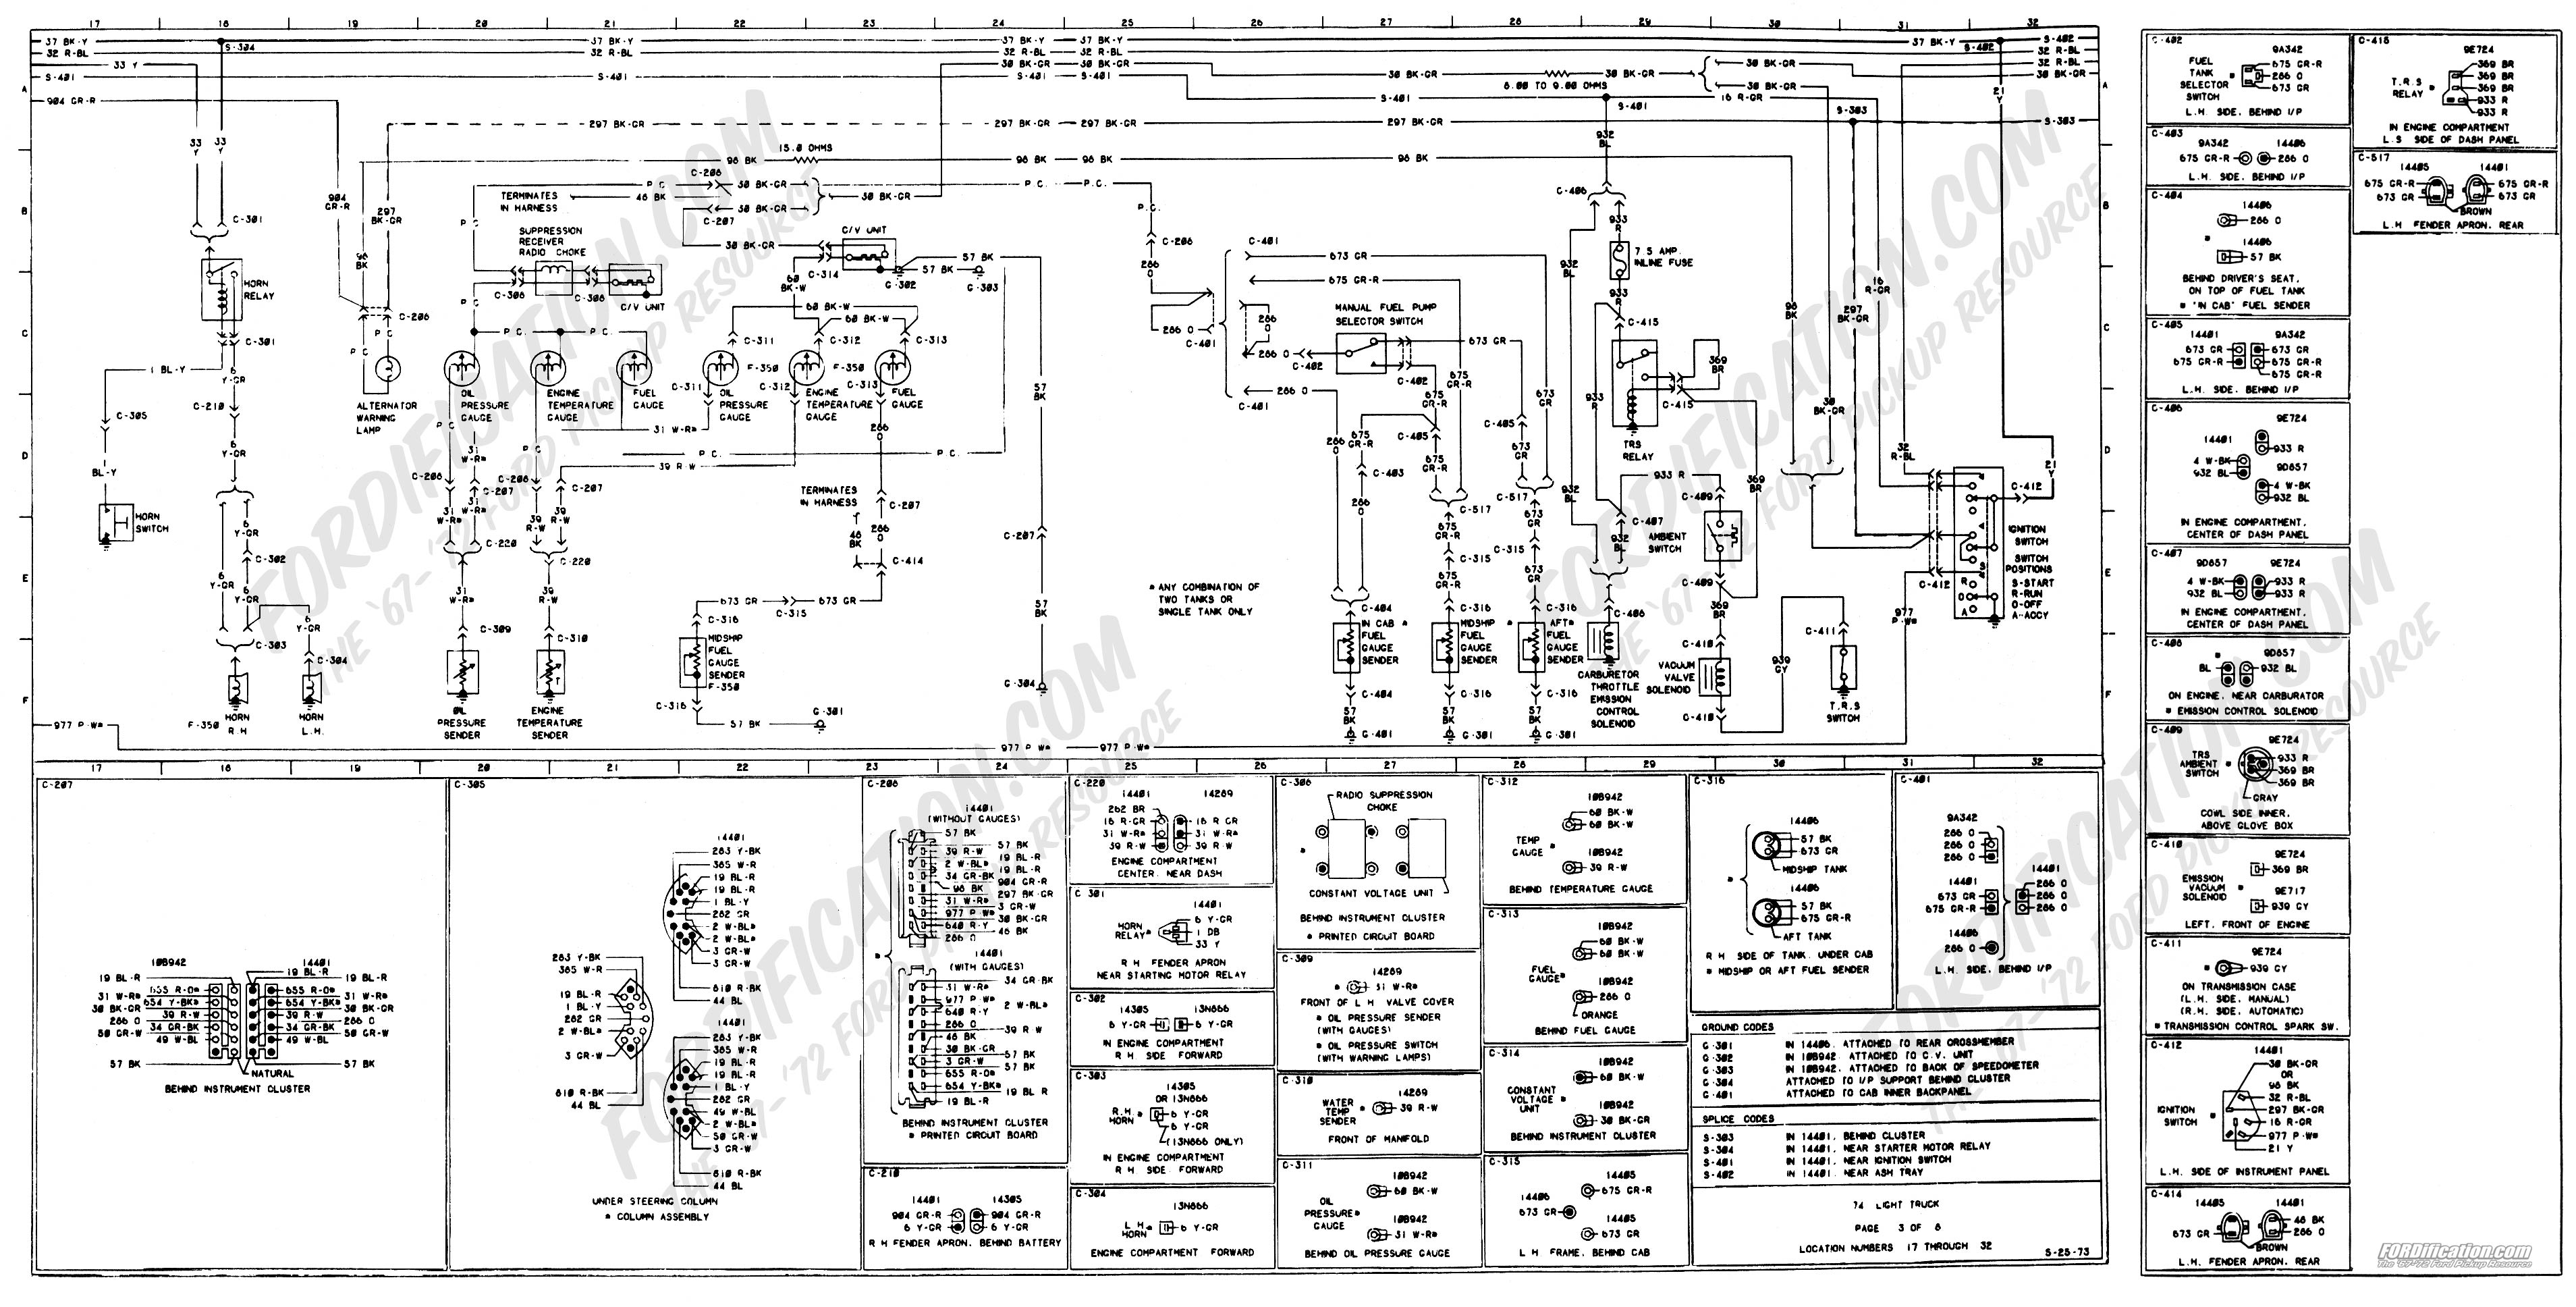 wiring_74master_3of8 1973 1979 ford truck wiring diagrams & schematics fordification net ford wiring harness diagrams at gsmx.co